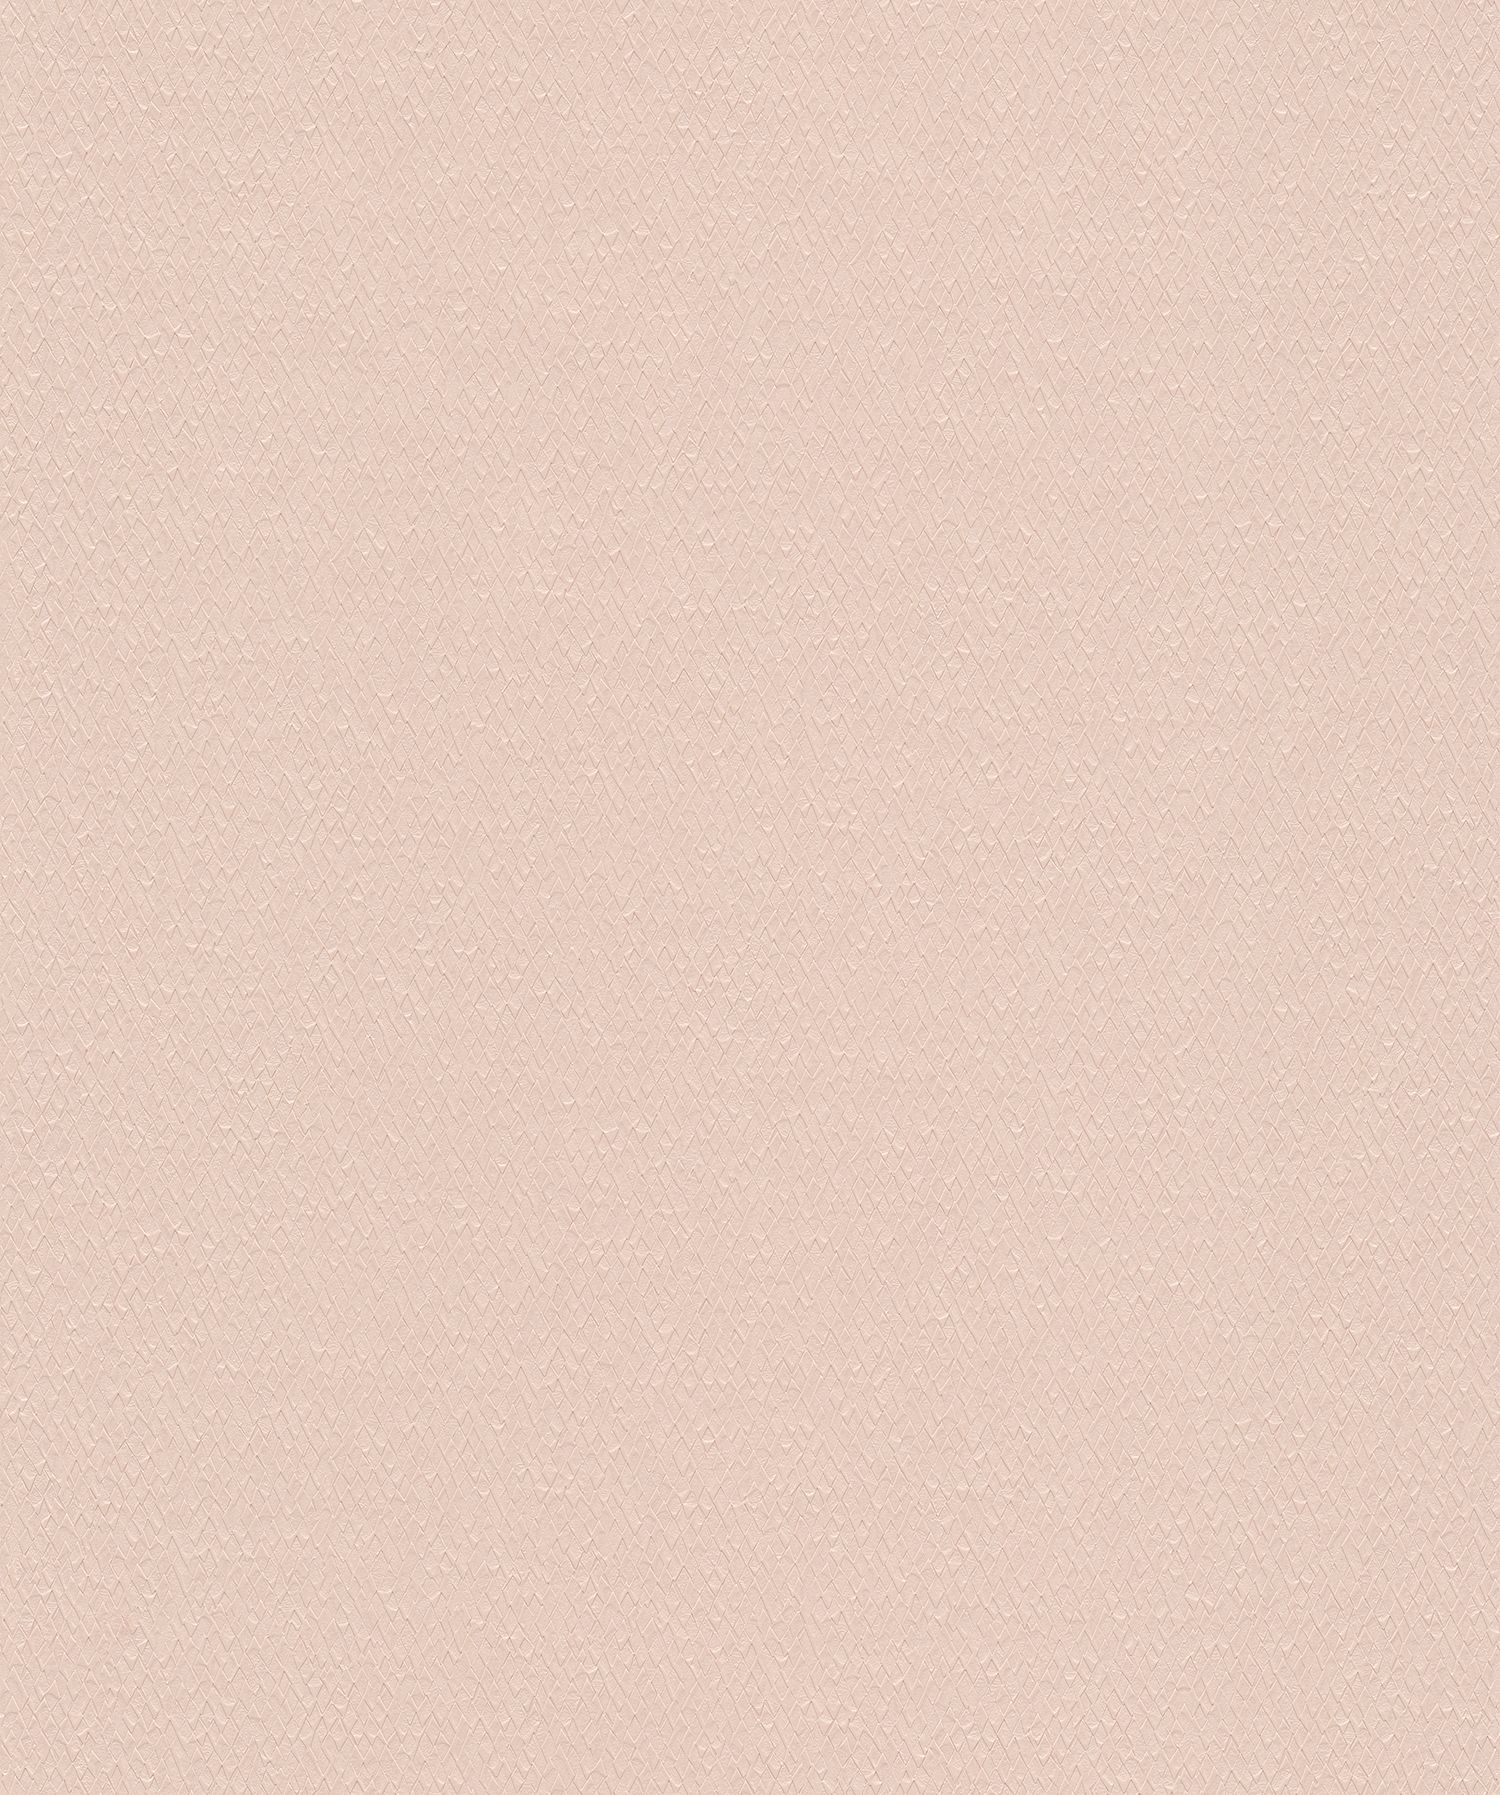 A Soft Pink Wallpaper With Diamond Emboss Diamond Plain Is A Strong Embossed Product With A Subtle Perle Effe Textured Wallpaper Brewster Wallcovering Brewster